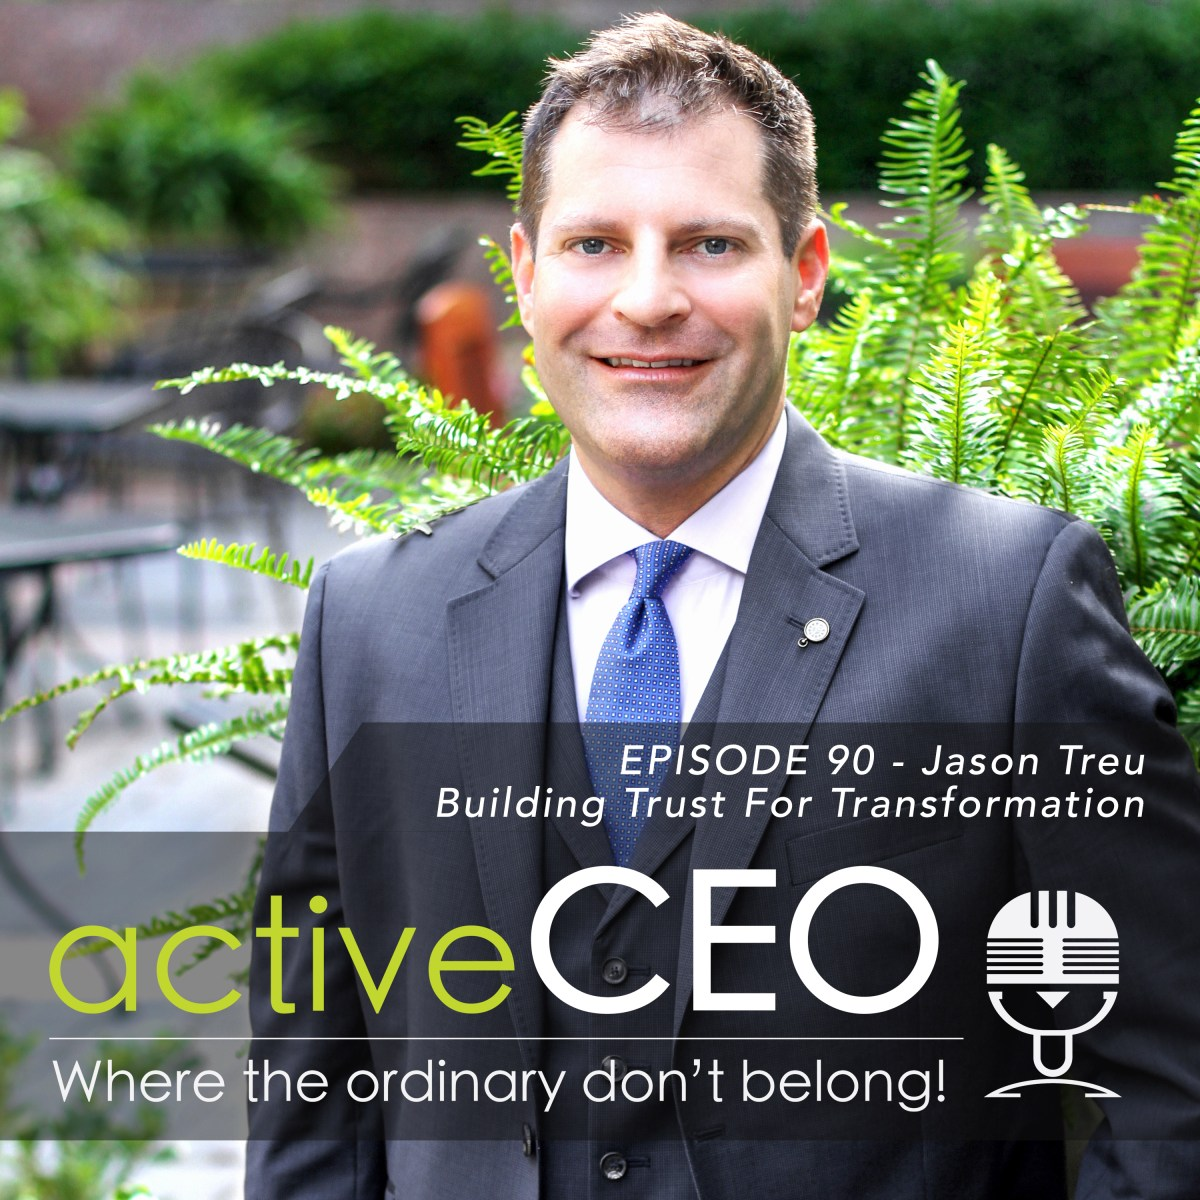 active CEO Podcast #90 Jason Treu Building Trust For Transformation Craig Johns Breaking The CEO Code NRG2Perform CEO Leadership Trust